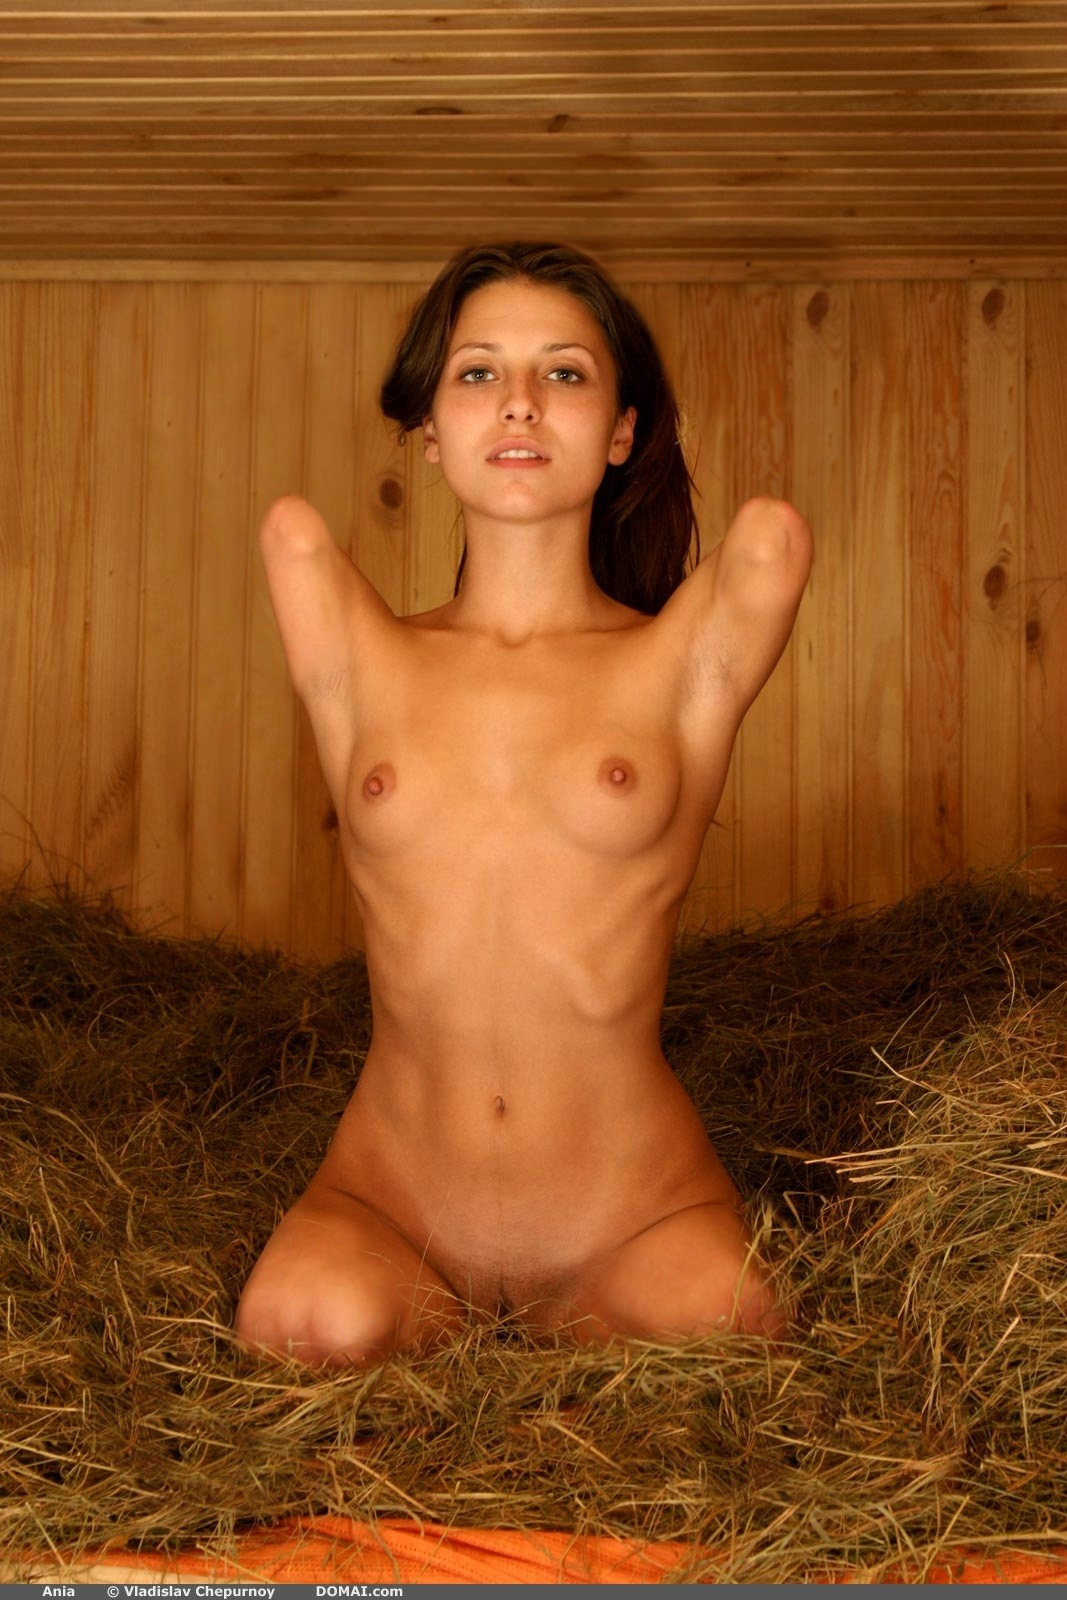 girl Nude limbless